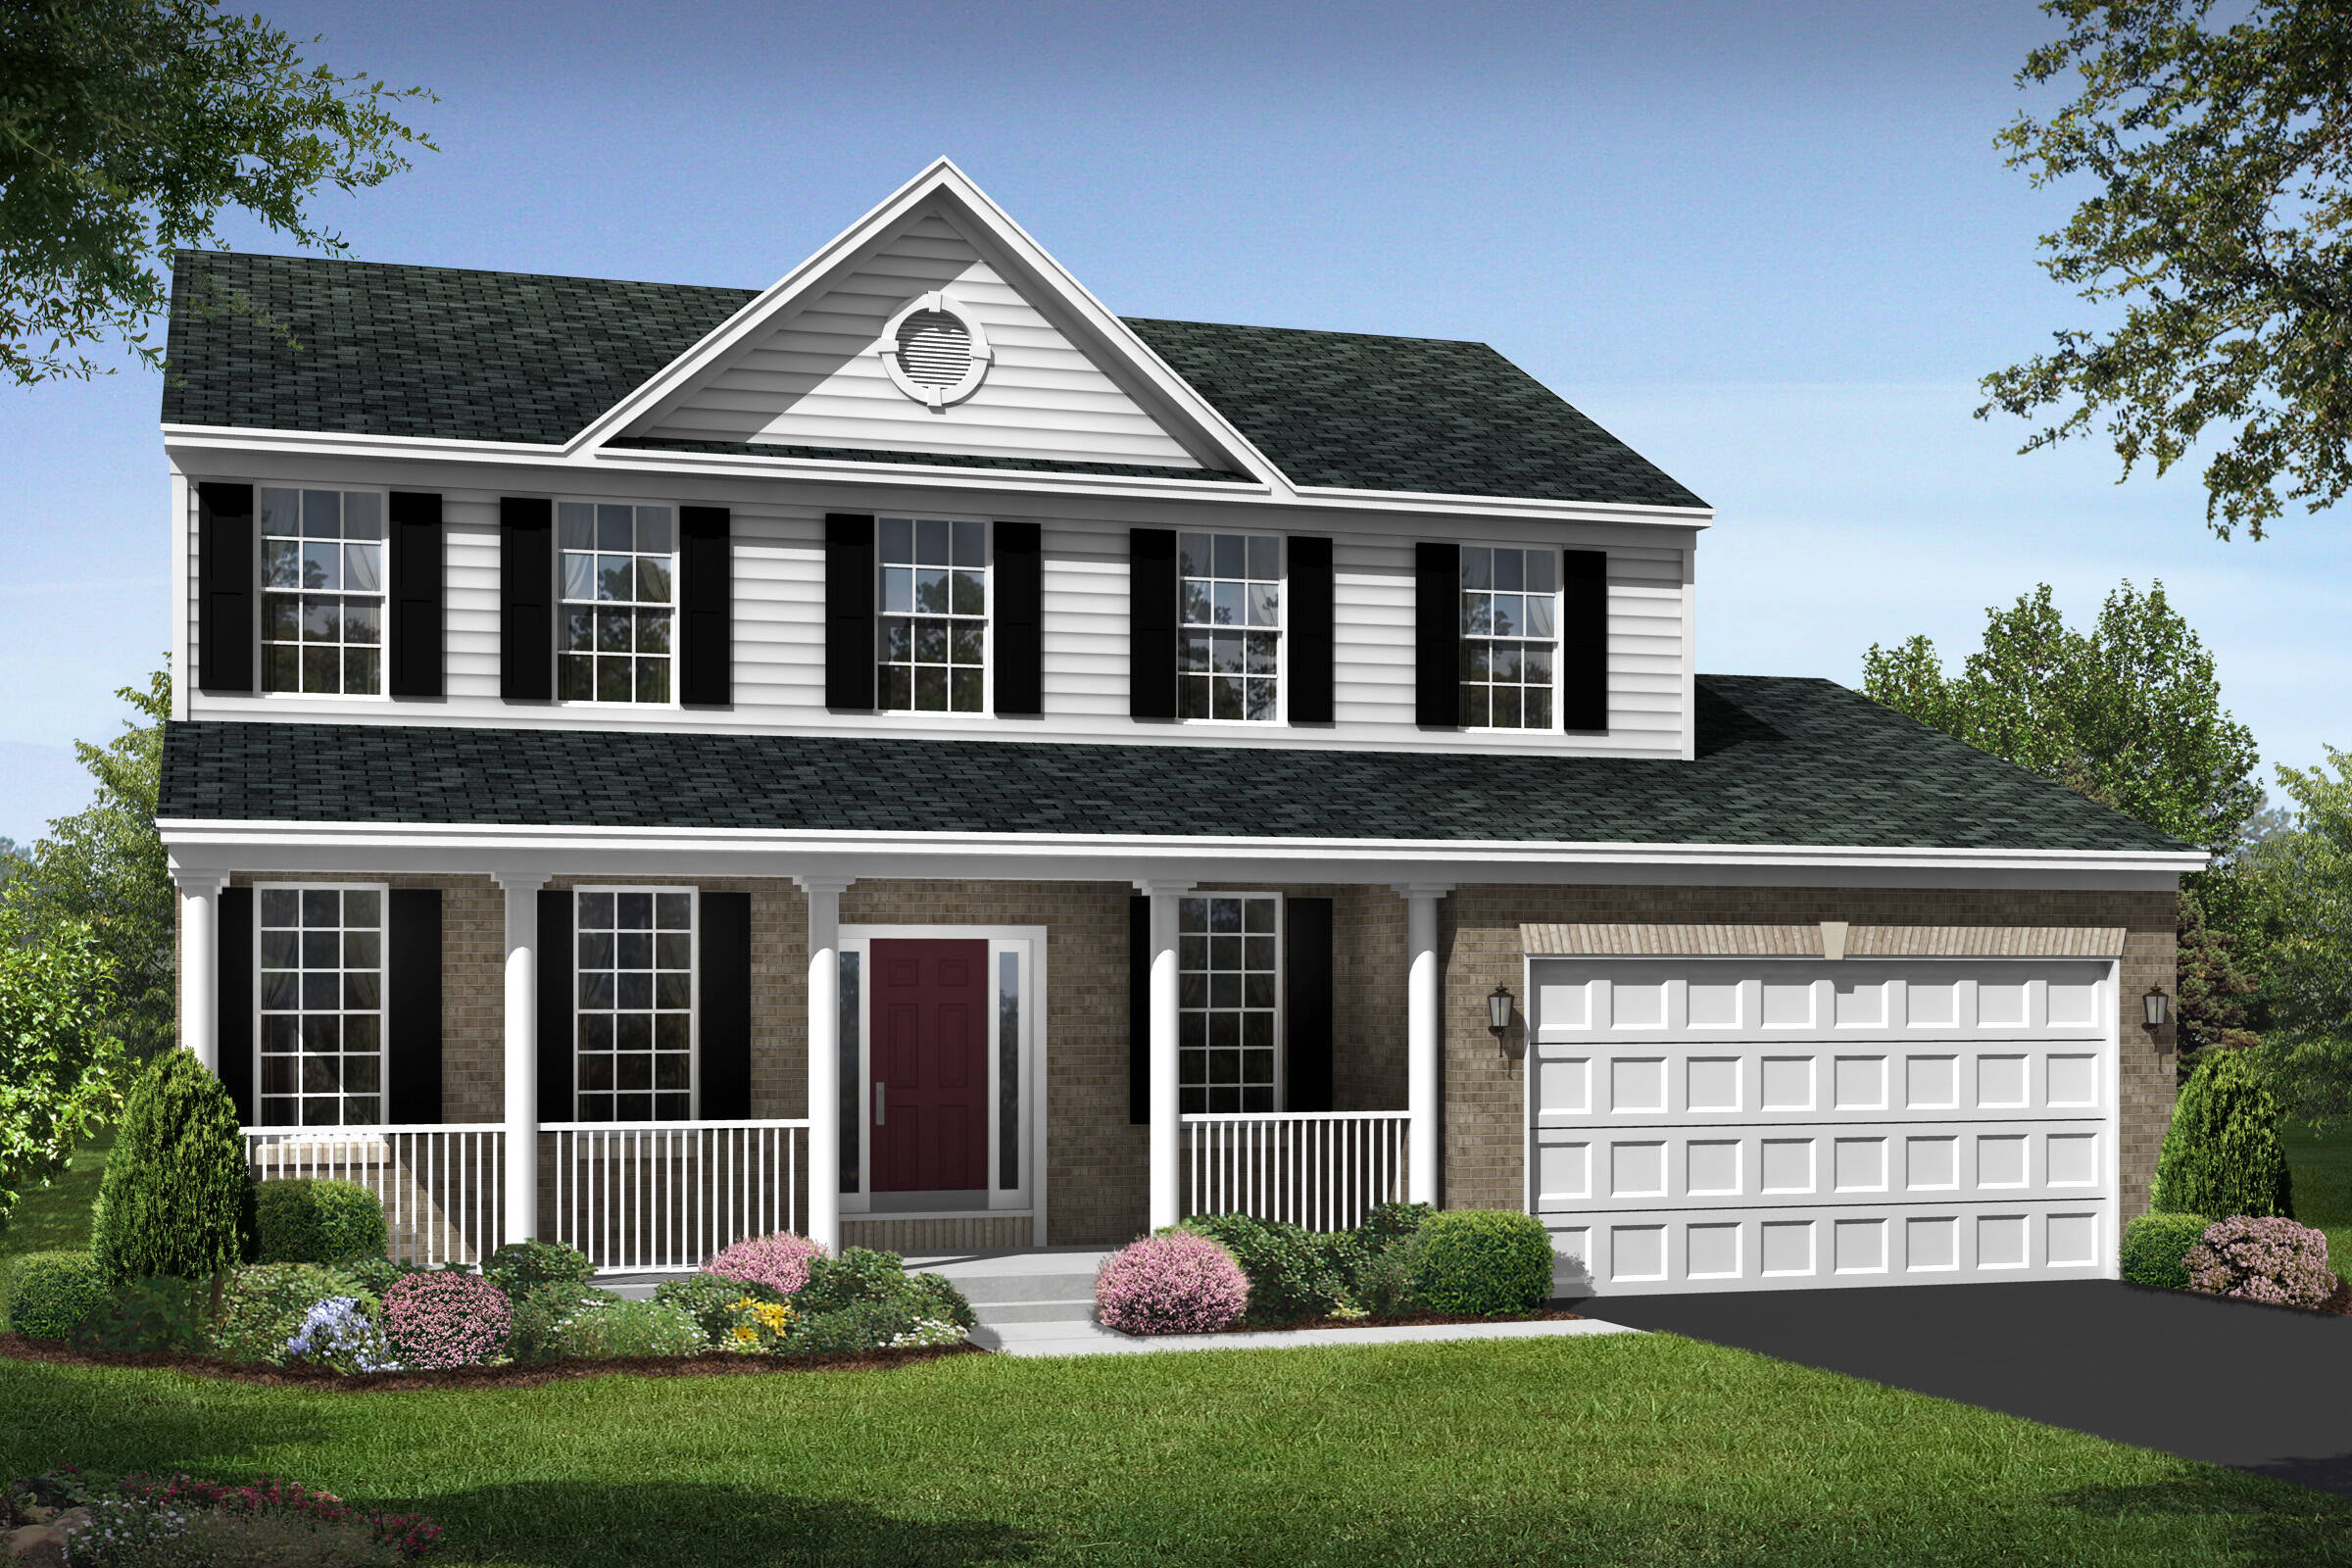 dakota country new homes at shenandoah springs in west virginia